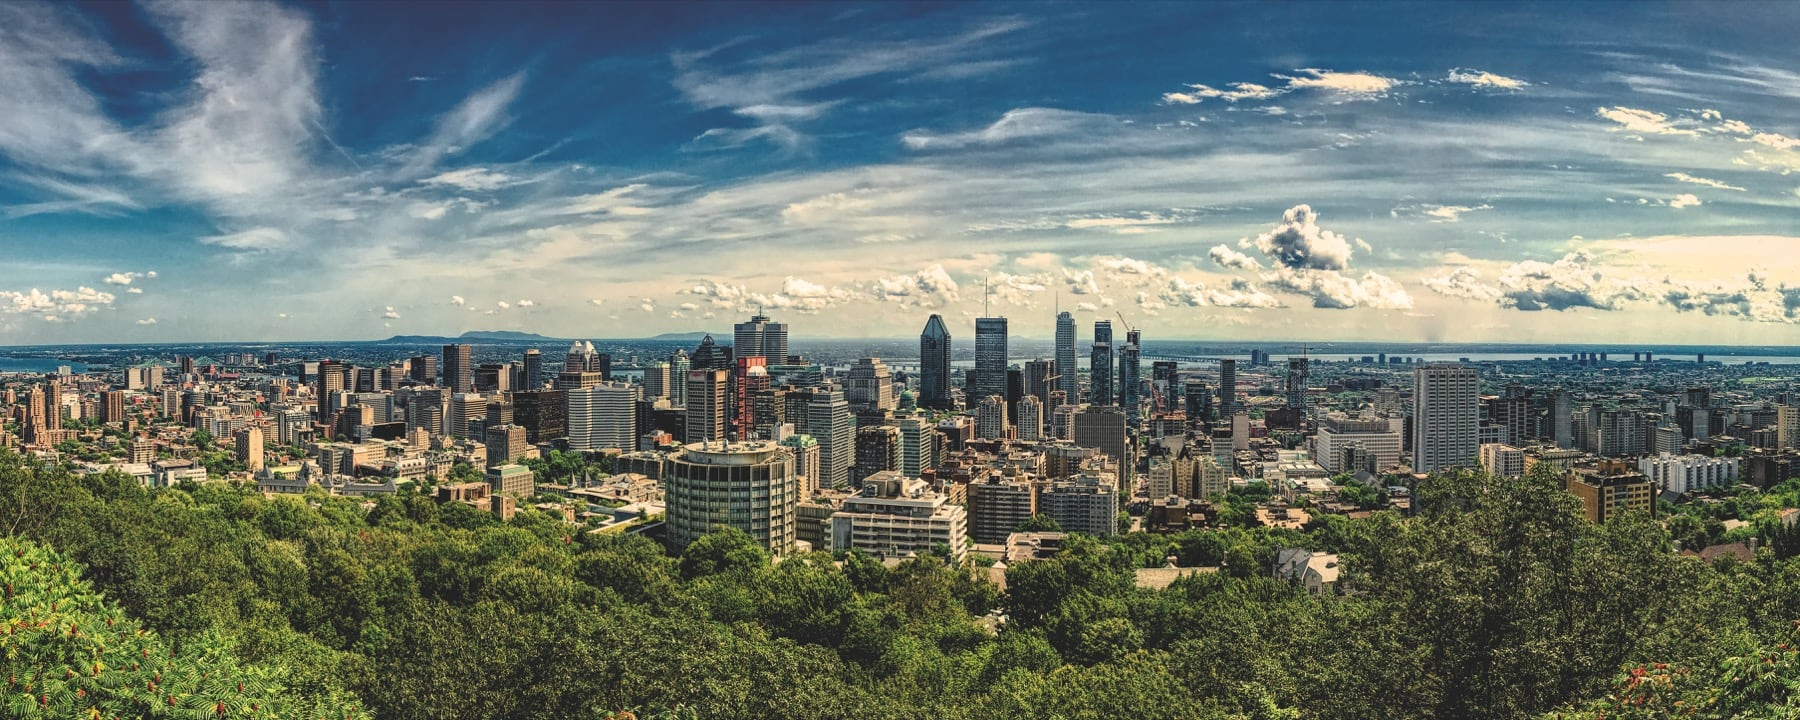 Montreal: a slice of Europe in the Americas